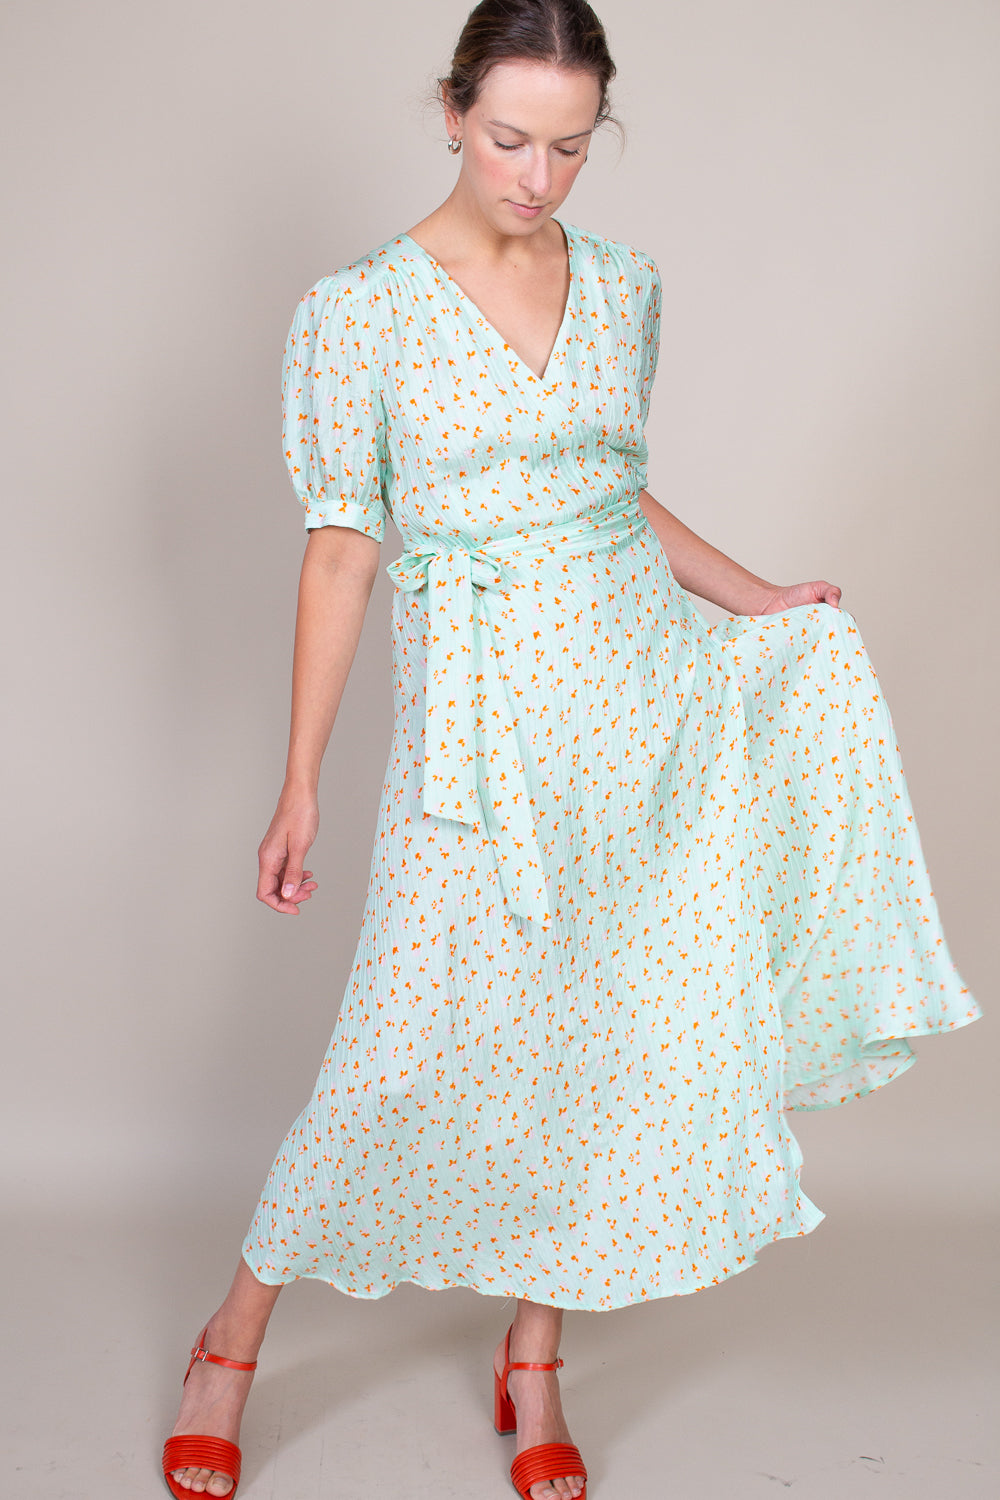 Lucia Dress in Mint Floral Gingham